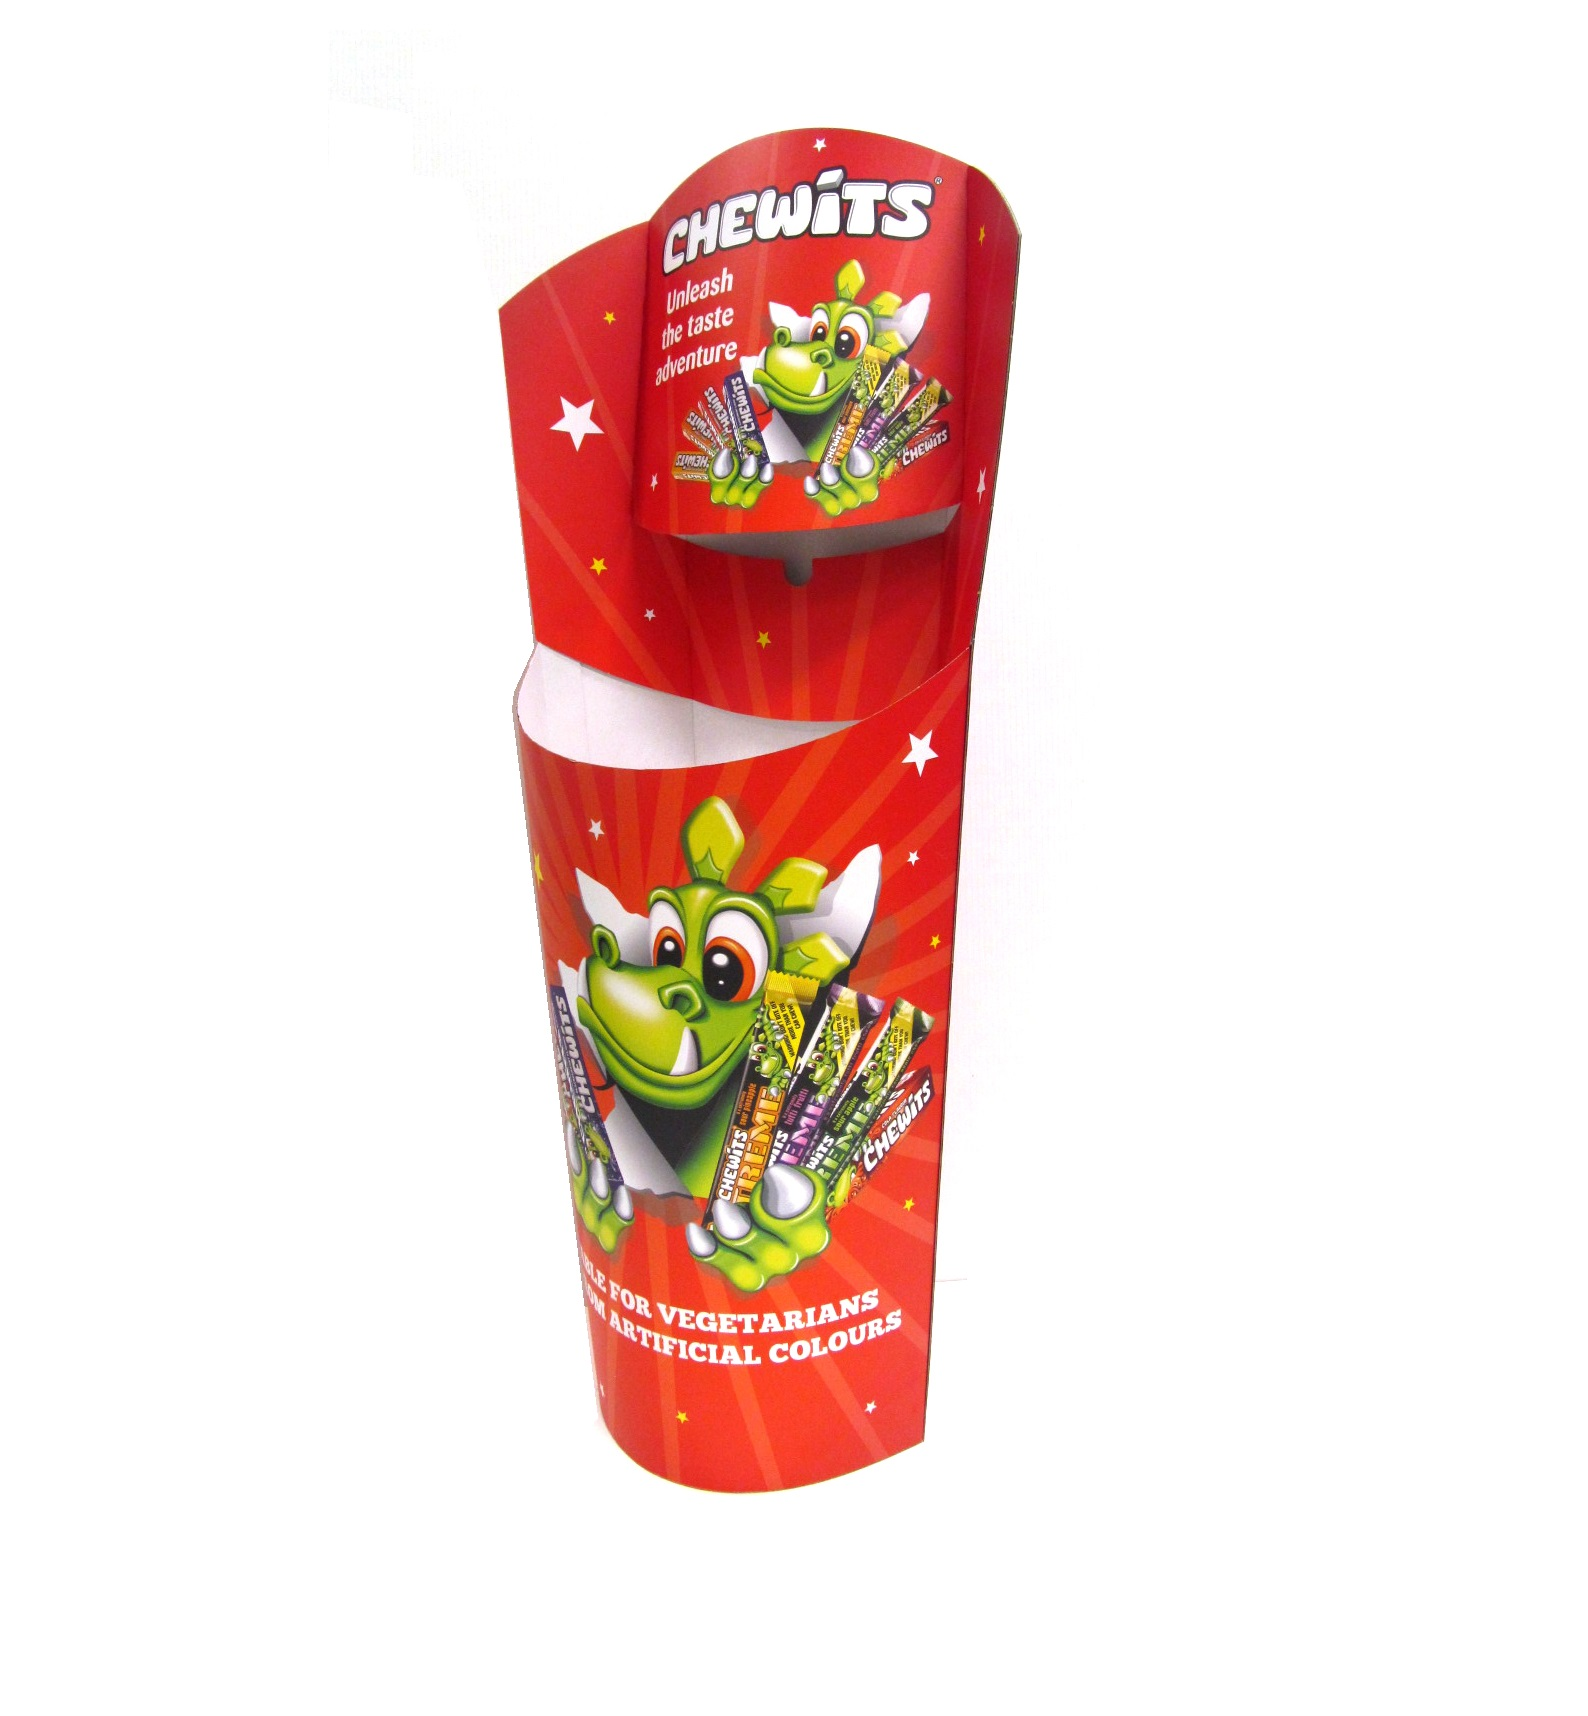 Confectionary / Chewits Dump Bin